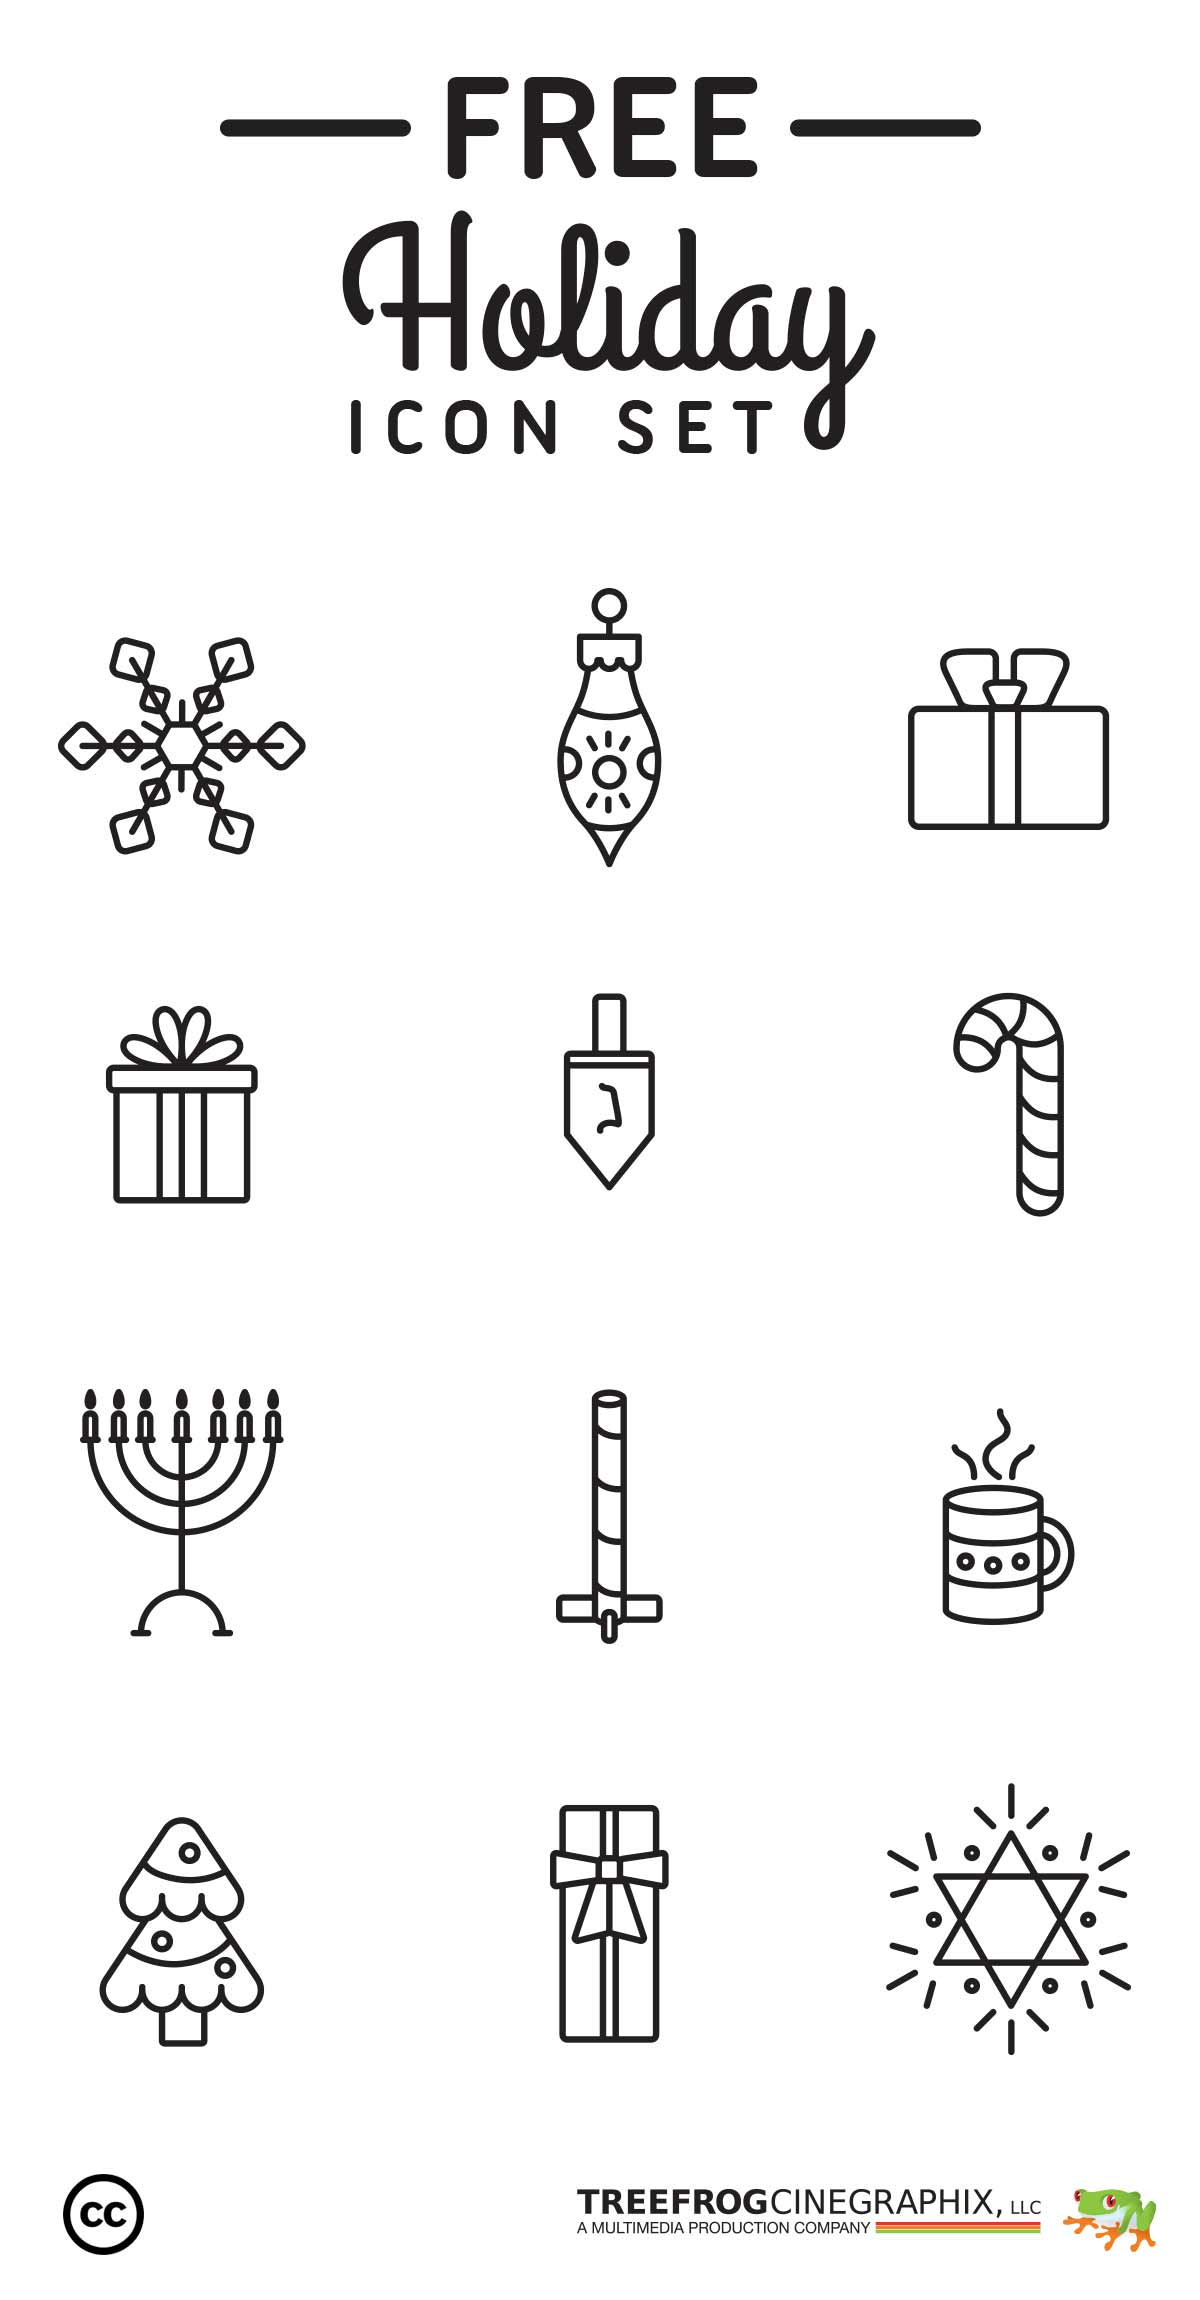 download free holiday icon set